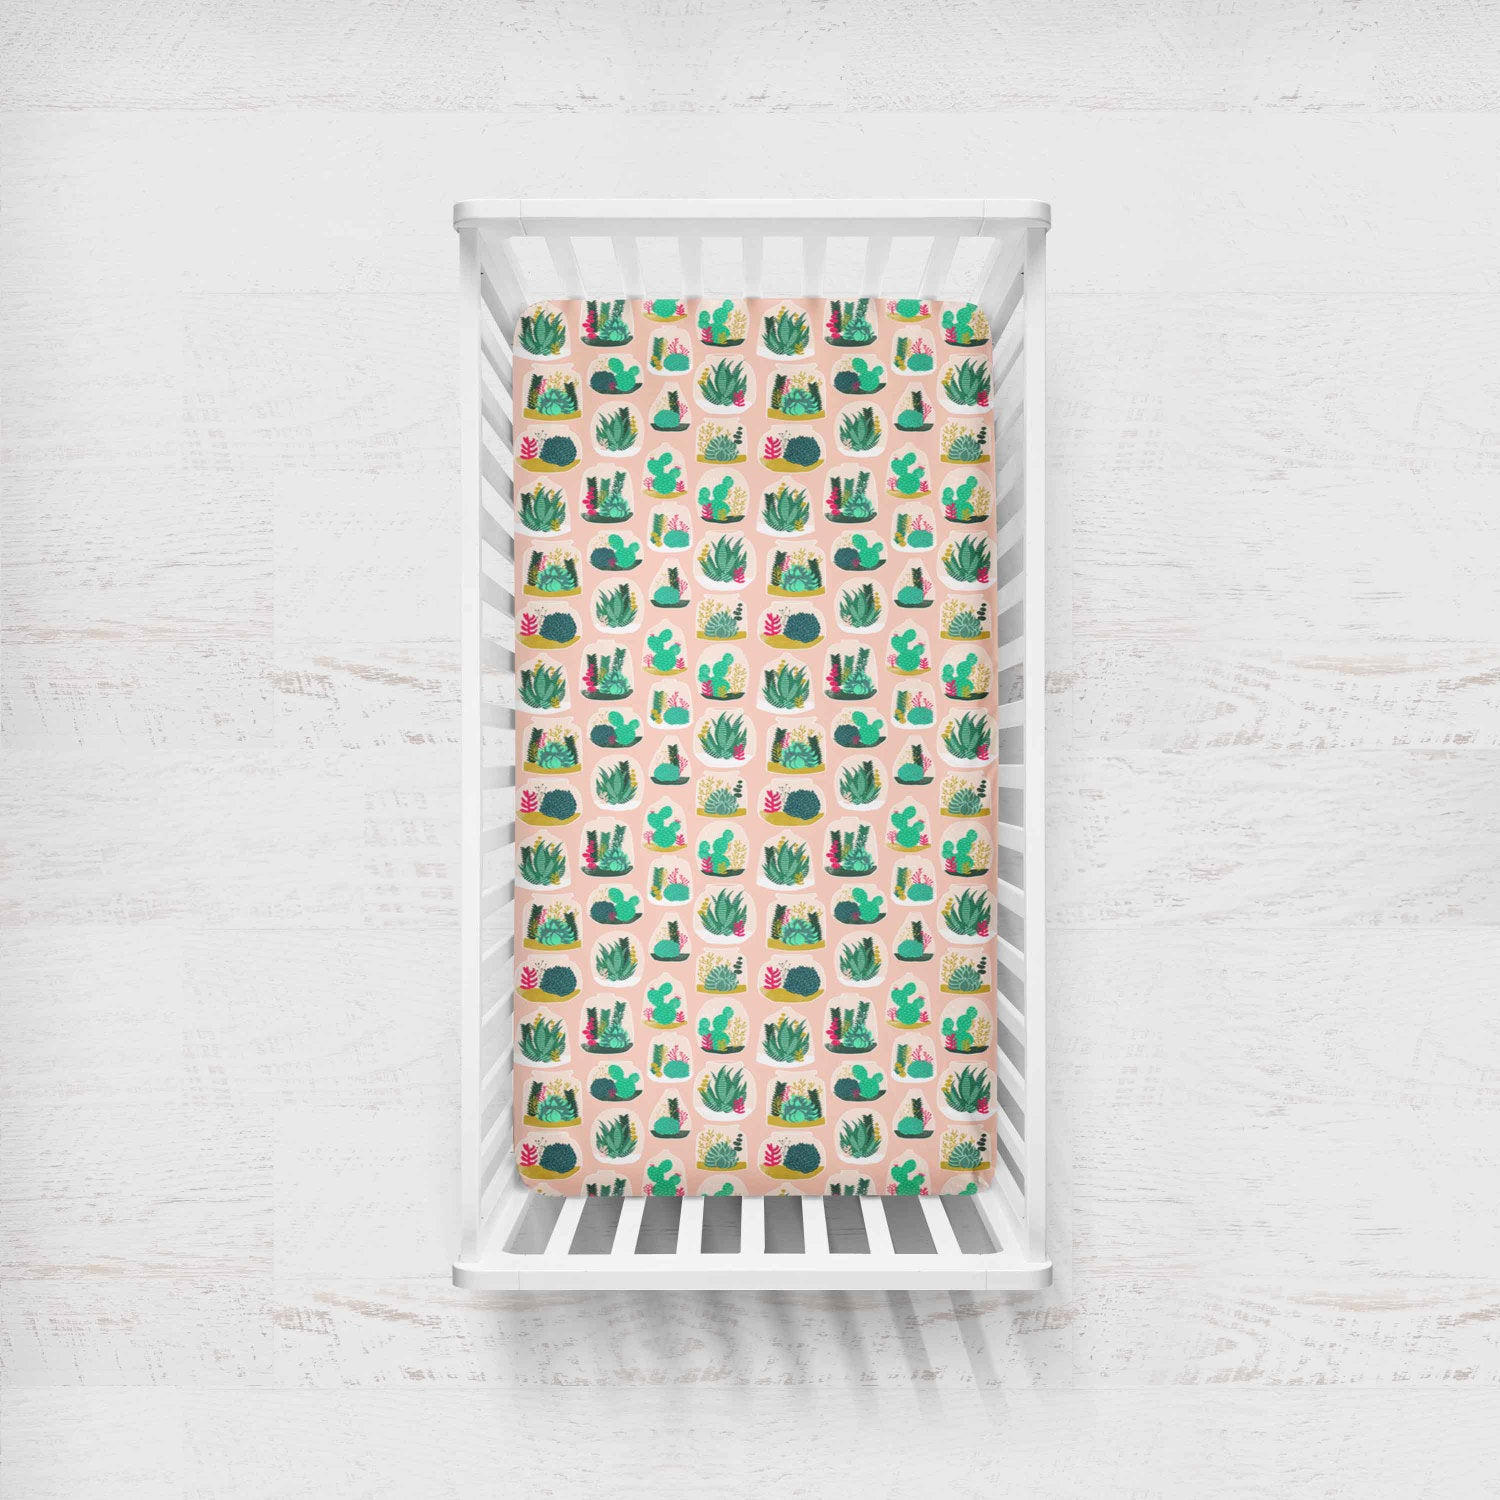 Girls Crib Sheet - Succulent - Fitted Crib Sheet- Pink Cacti Crib Bedding - cactus Bedding - Baby Bedding - Baby Shower Gift - Girls - Dream Evergreen @DreamEvergreen